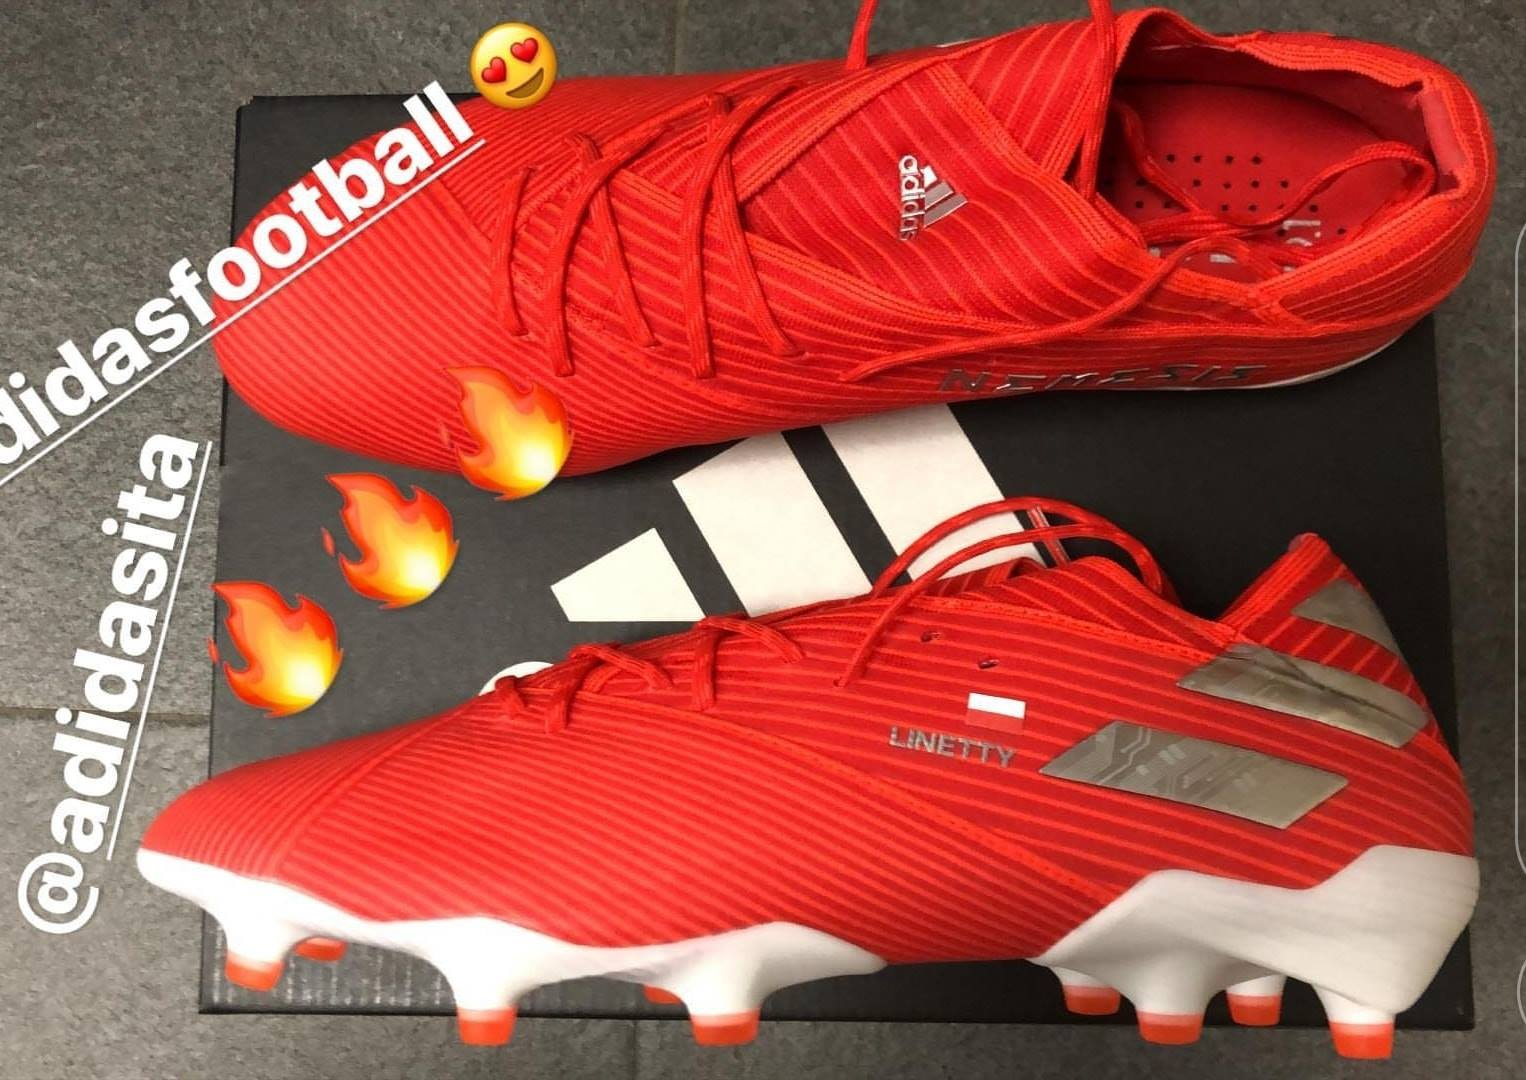 f3ca2781a26 Likely the most interesting boot of the collection, the next-generation  Adidas Nemeziz 19 cleats bring us many new tech features such as a two  split sole ...